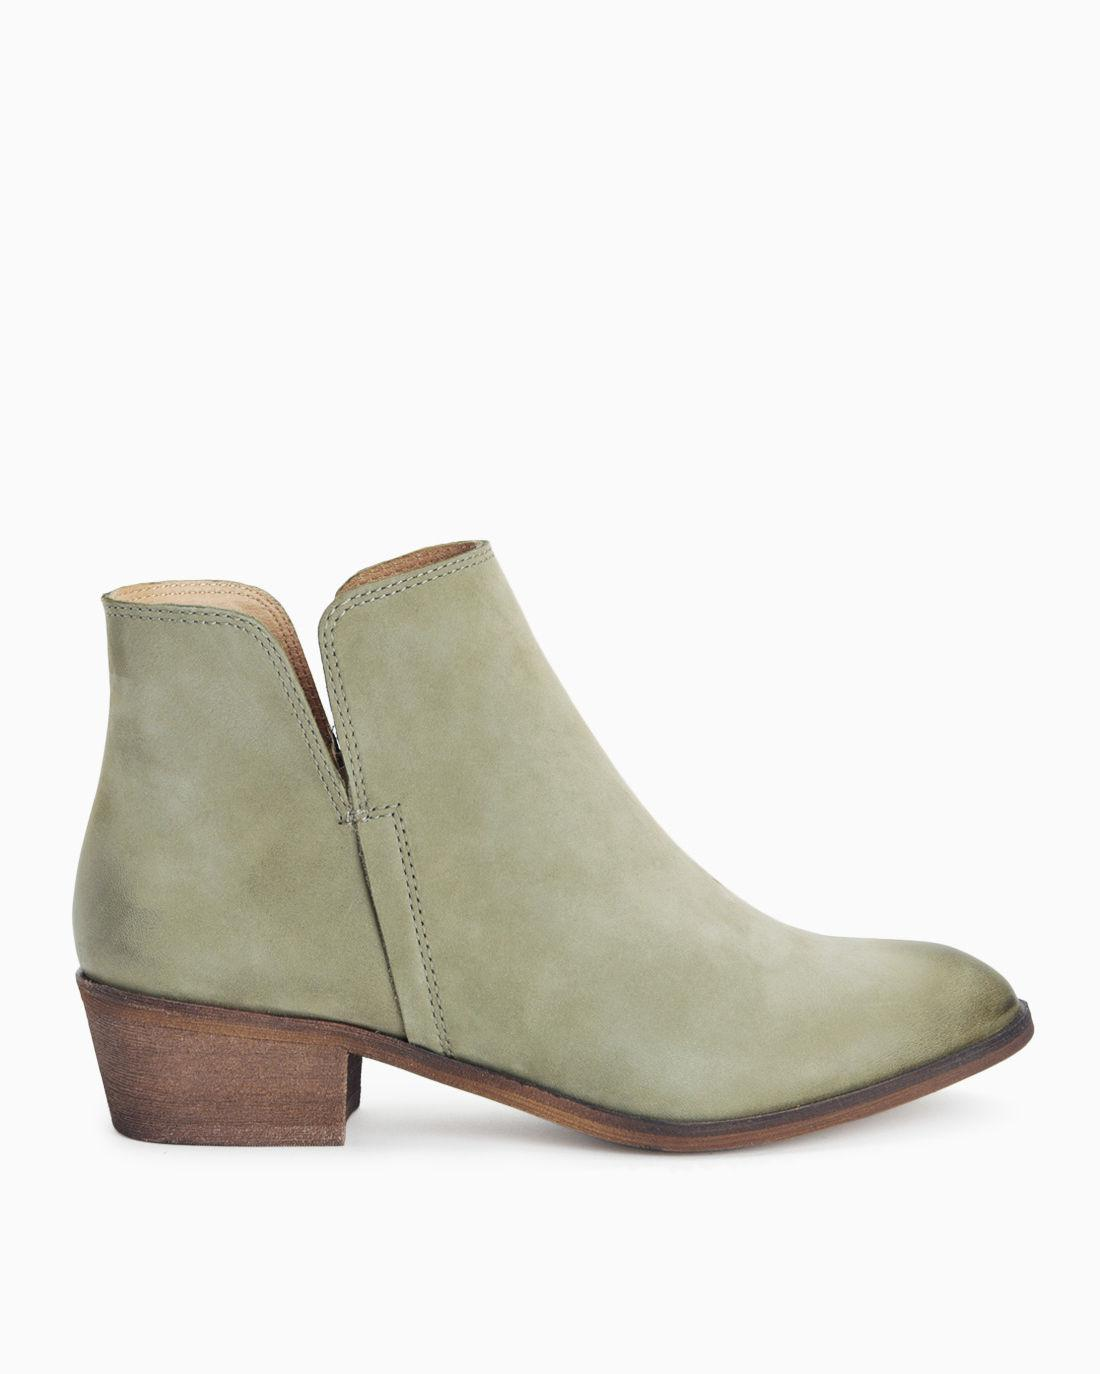 1b841d08ff66 Lyst - Splendid Hamptyn Zipper Bootie in Green - Save ...